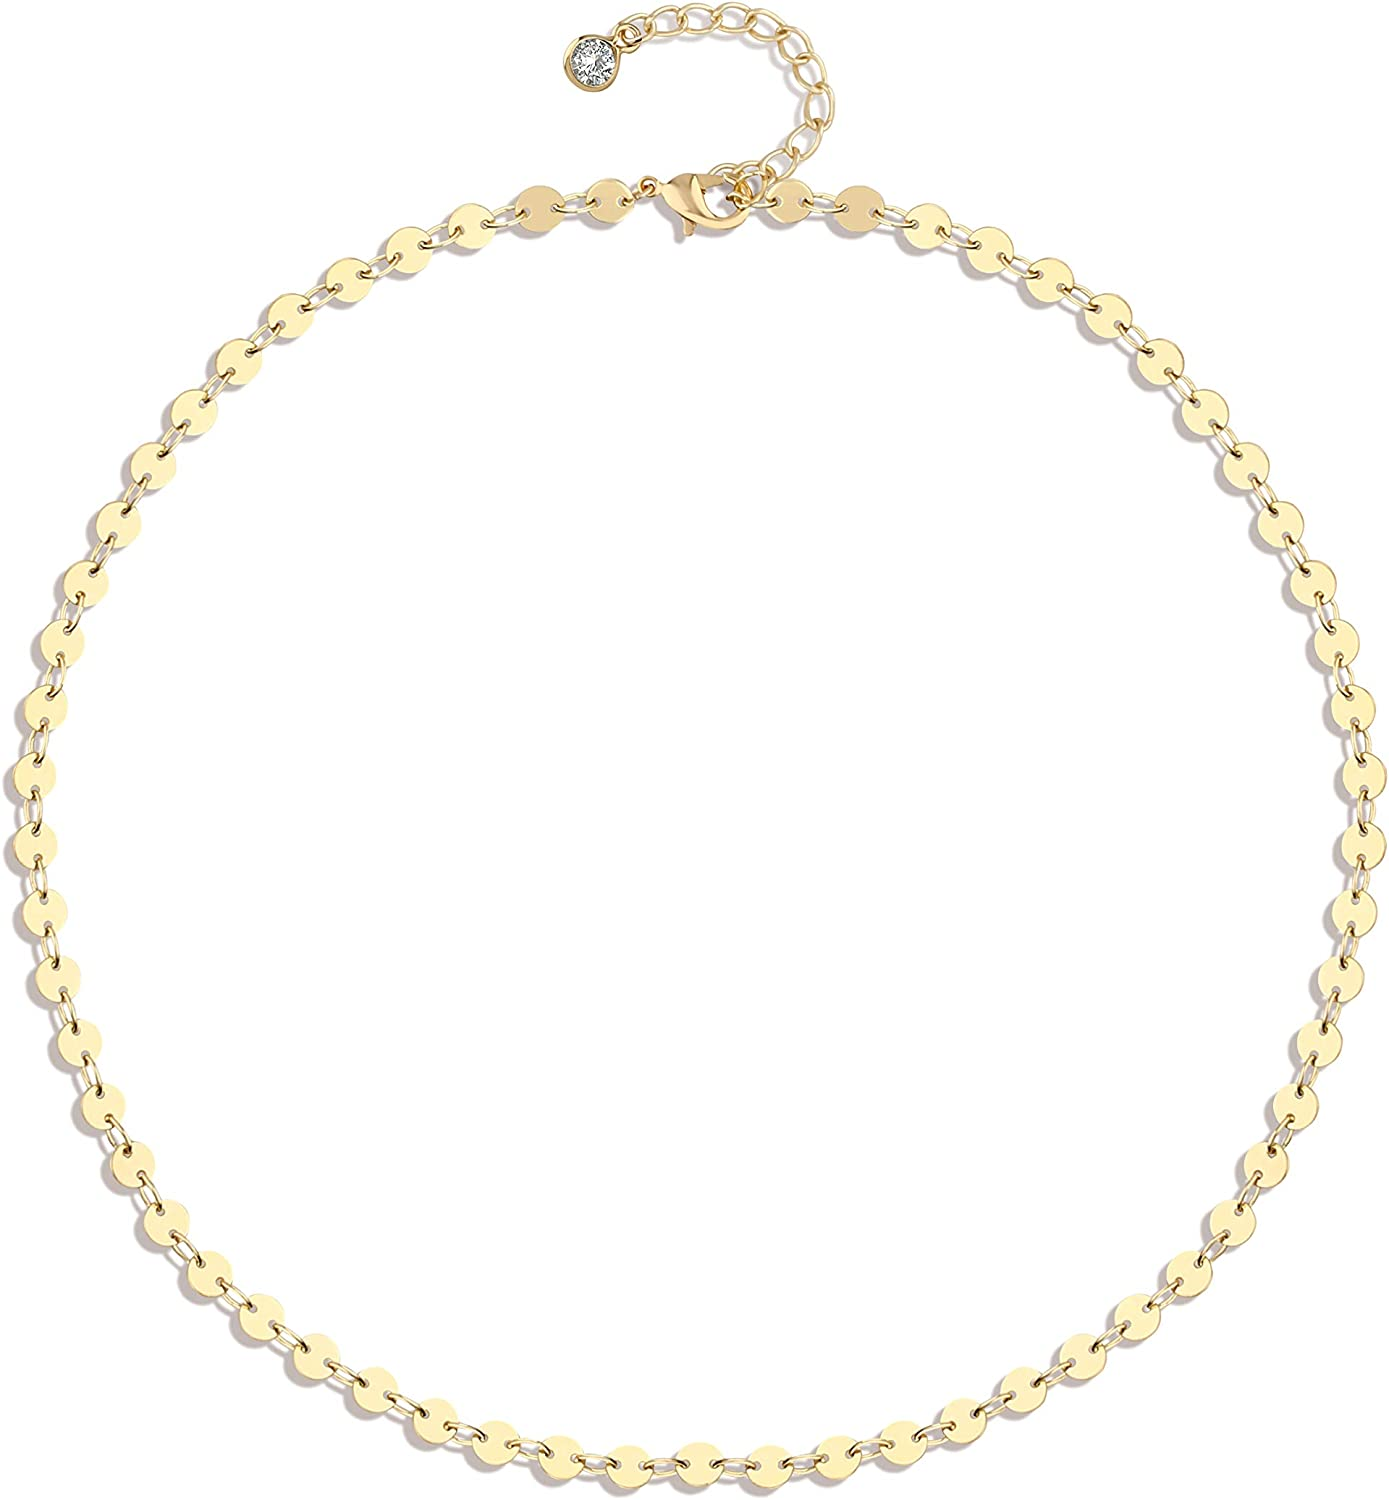 Fettero Layered Chain Necklace Gold Choker Satellite Bead Dainty Thin 14K Gold Plated Minimalist Simple Boho Trendy Jewelry Gift for Women Men